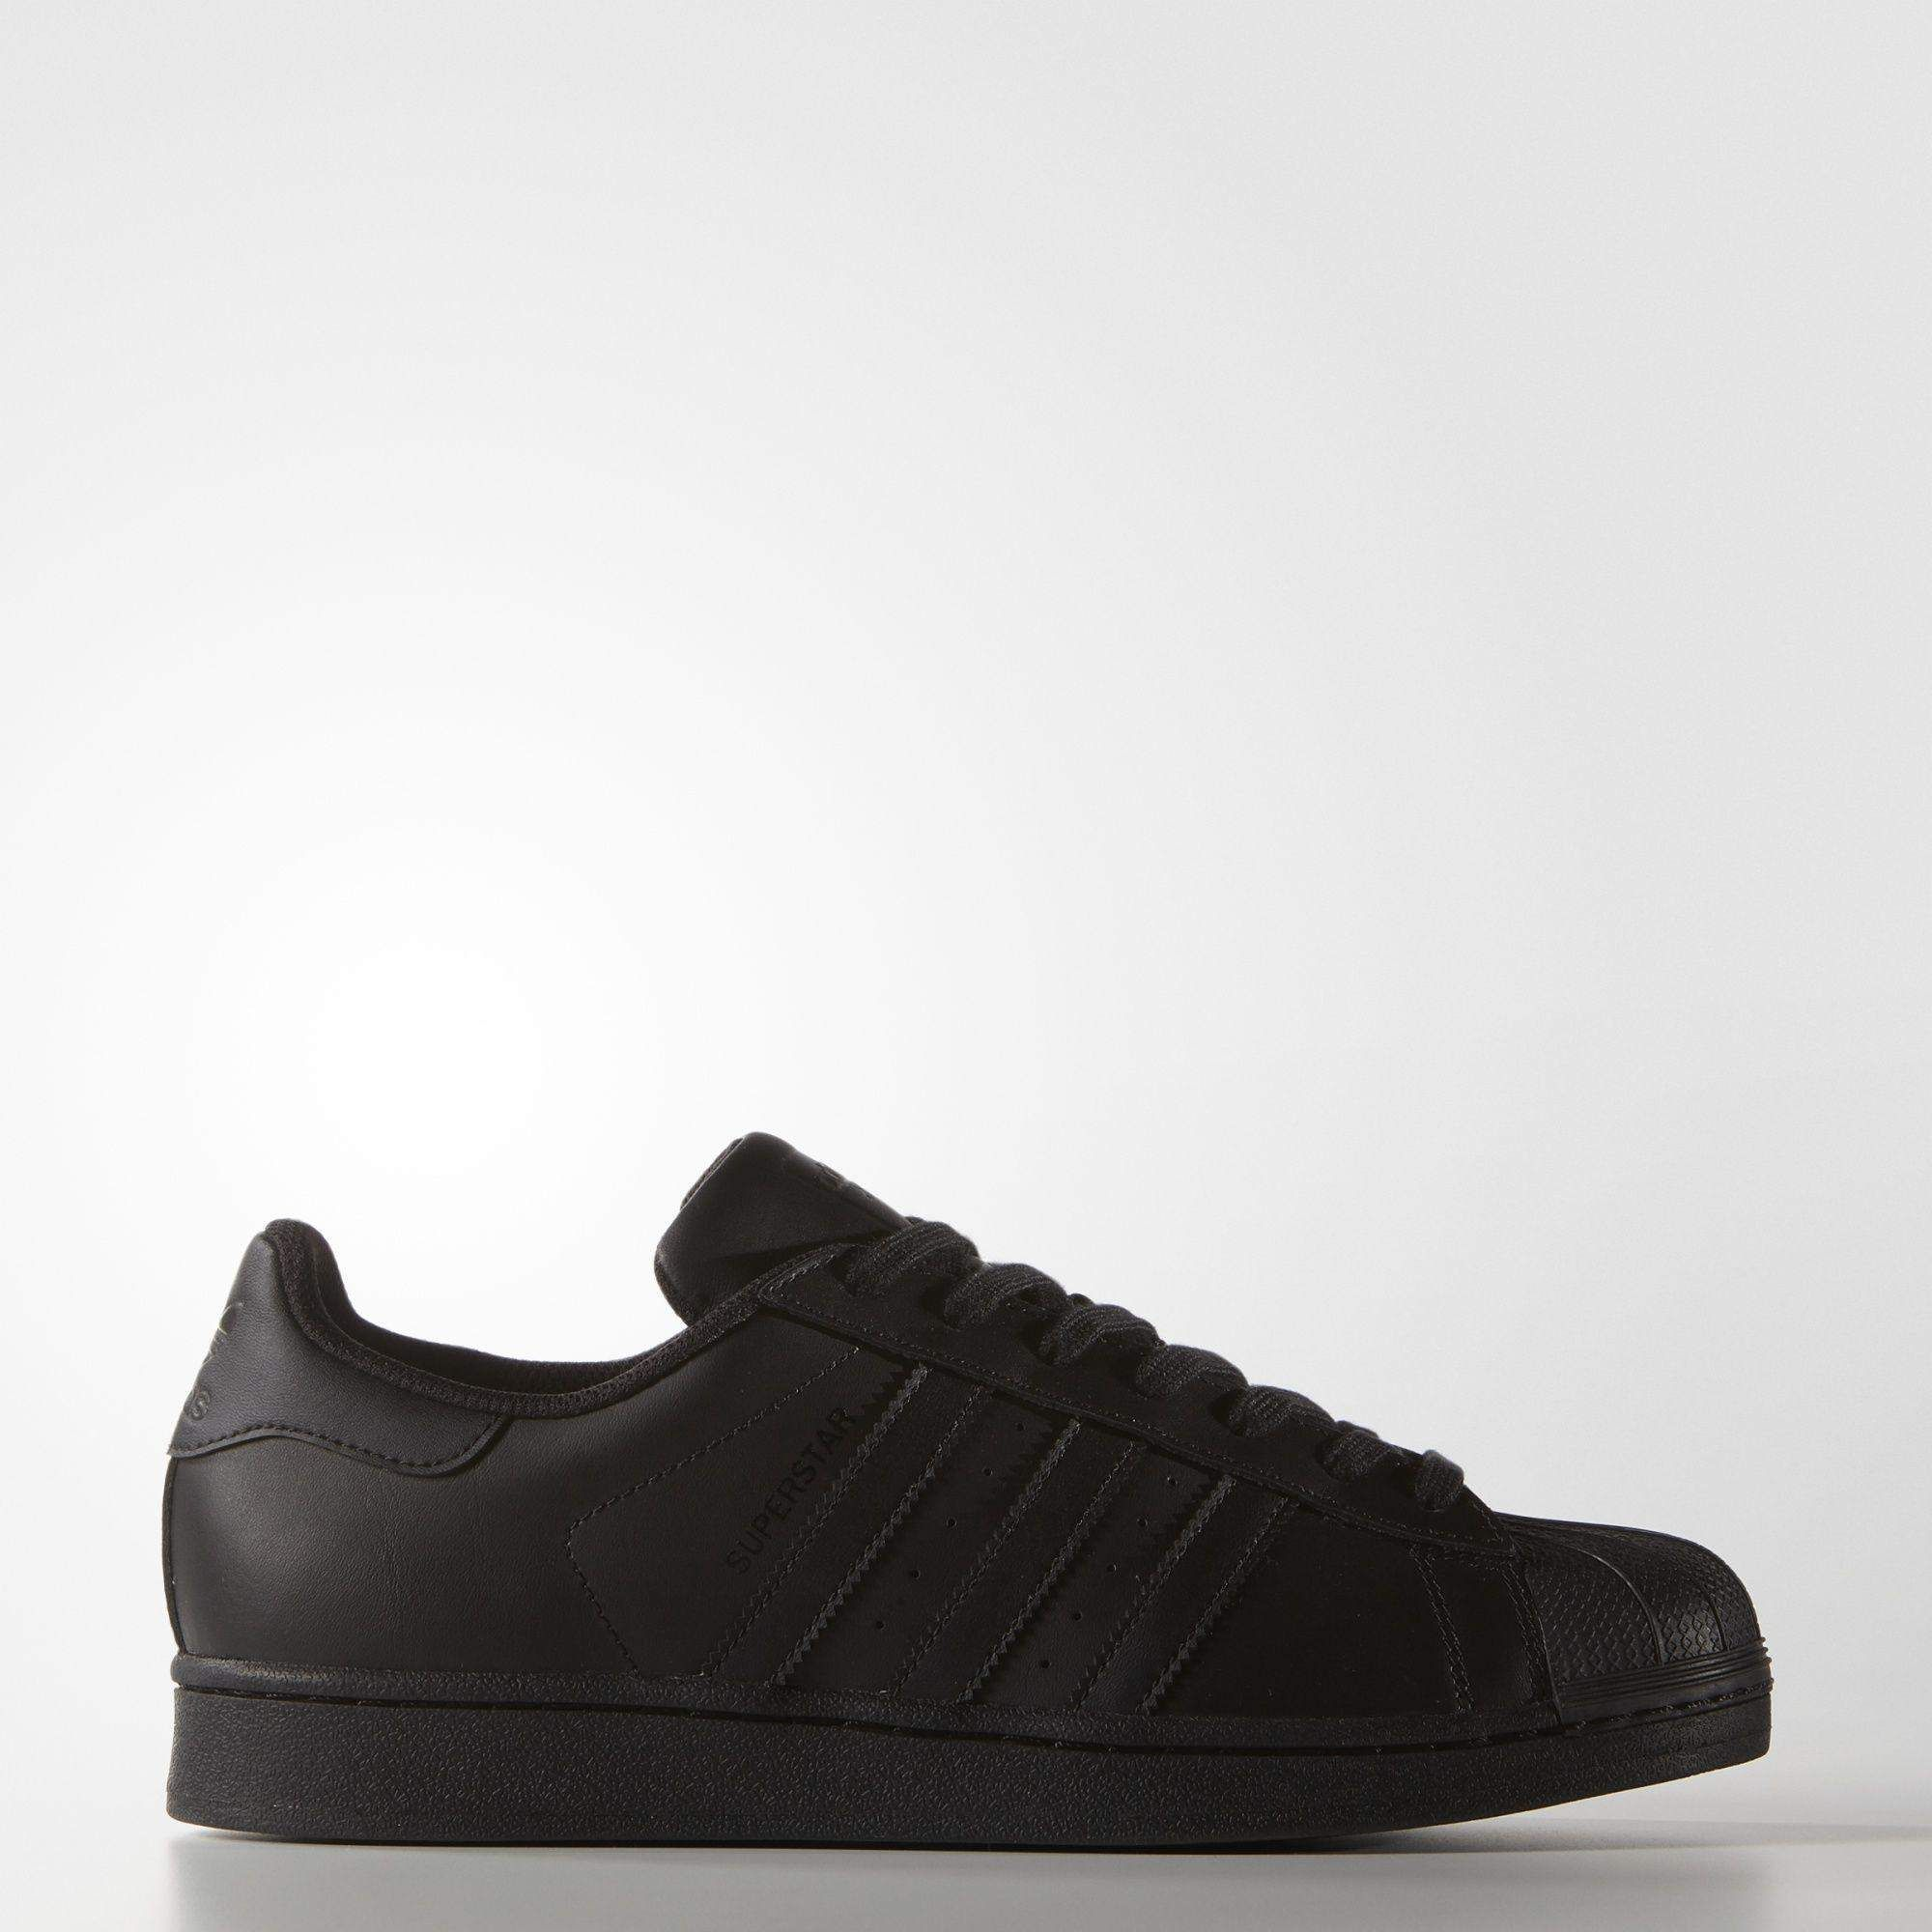 5b0eda522 Adidas Superstar Foundation Black Trainers